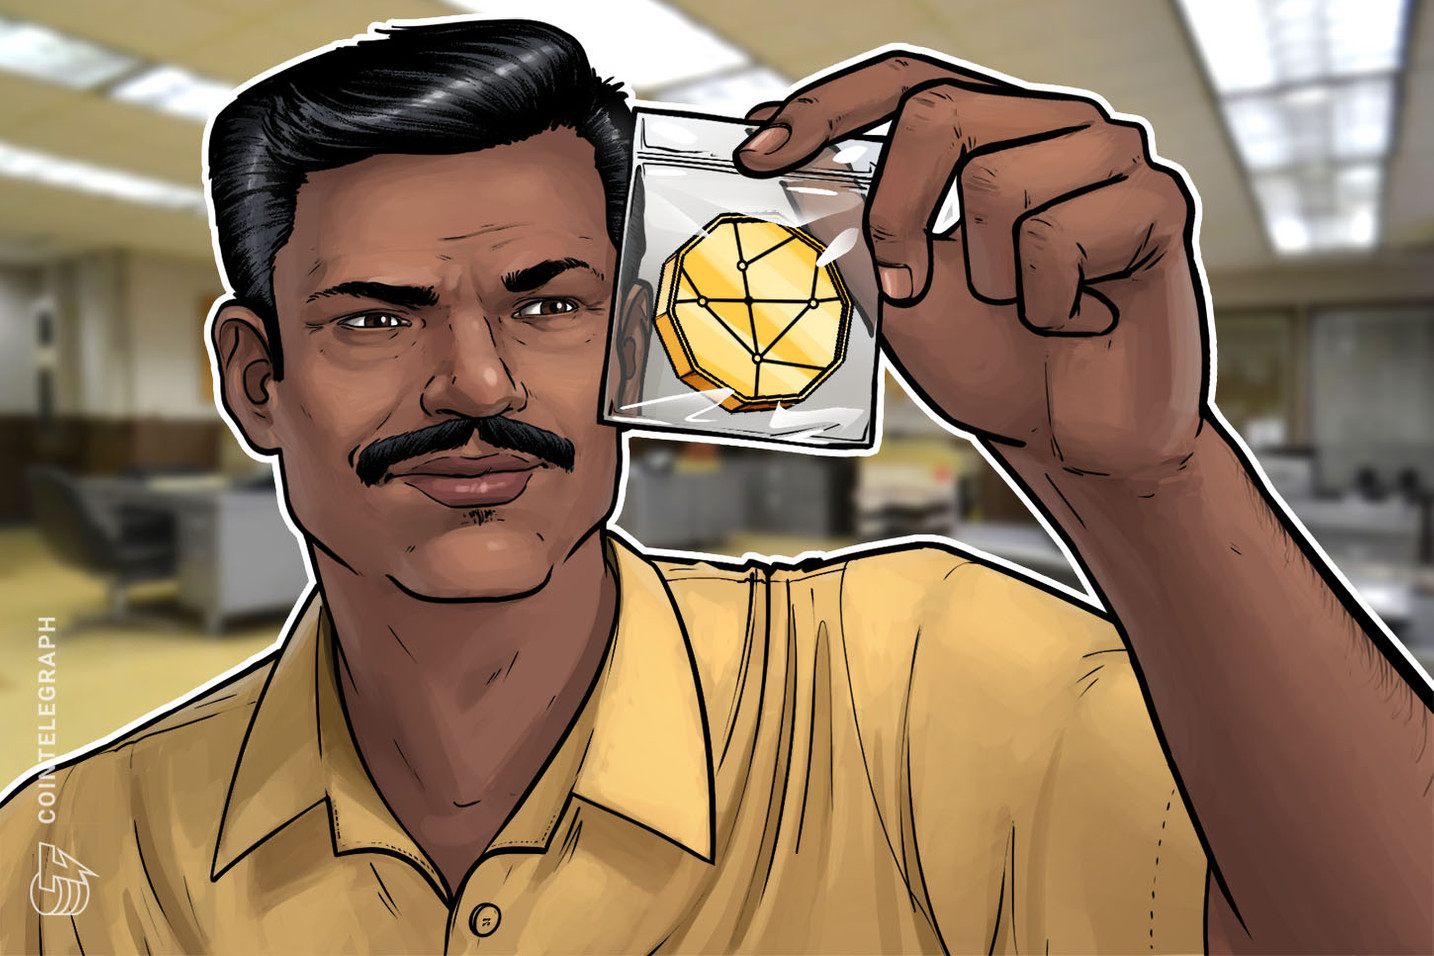 Police Arrest Indian Crypto Exchange Co-Founder for Unregistered 'Illegal' Bitcoin ATM